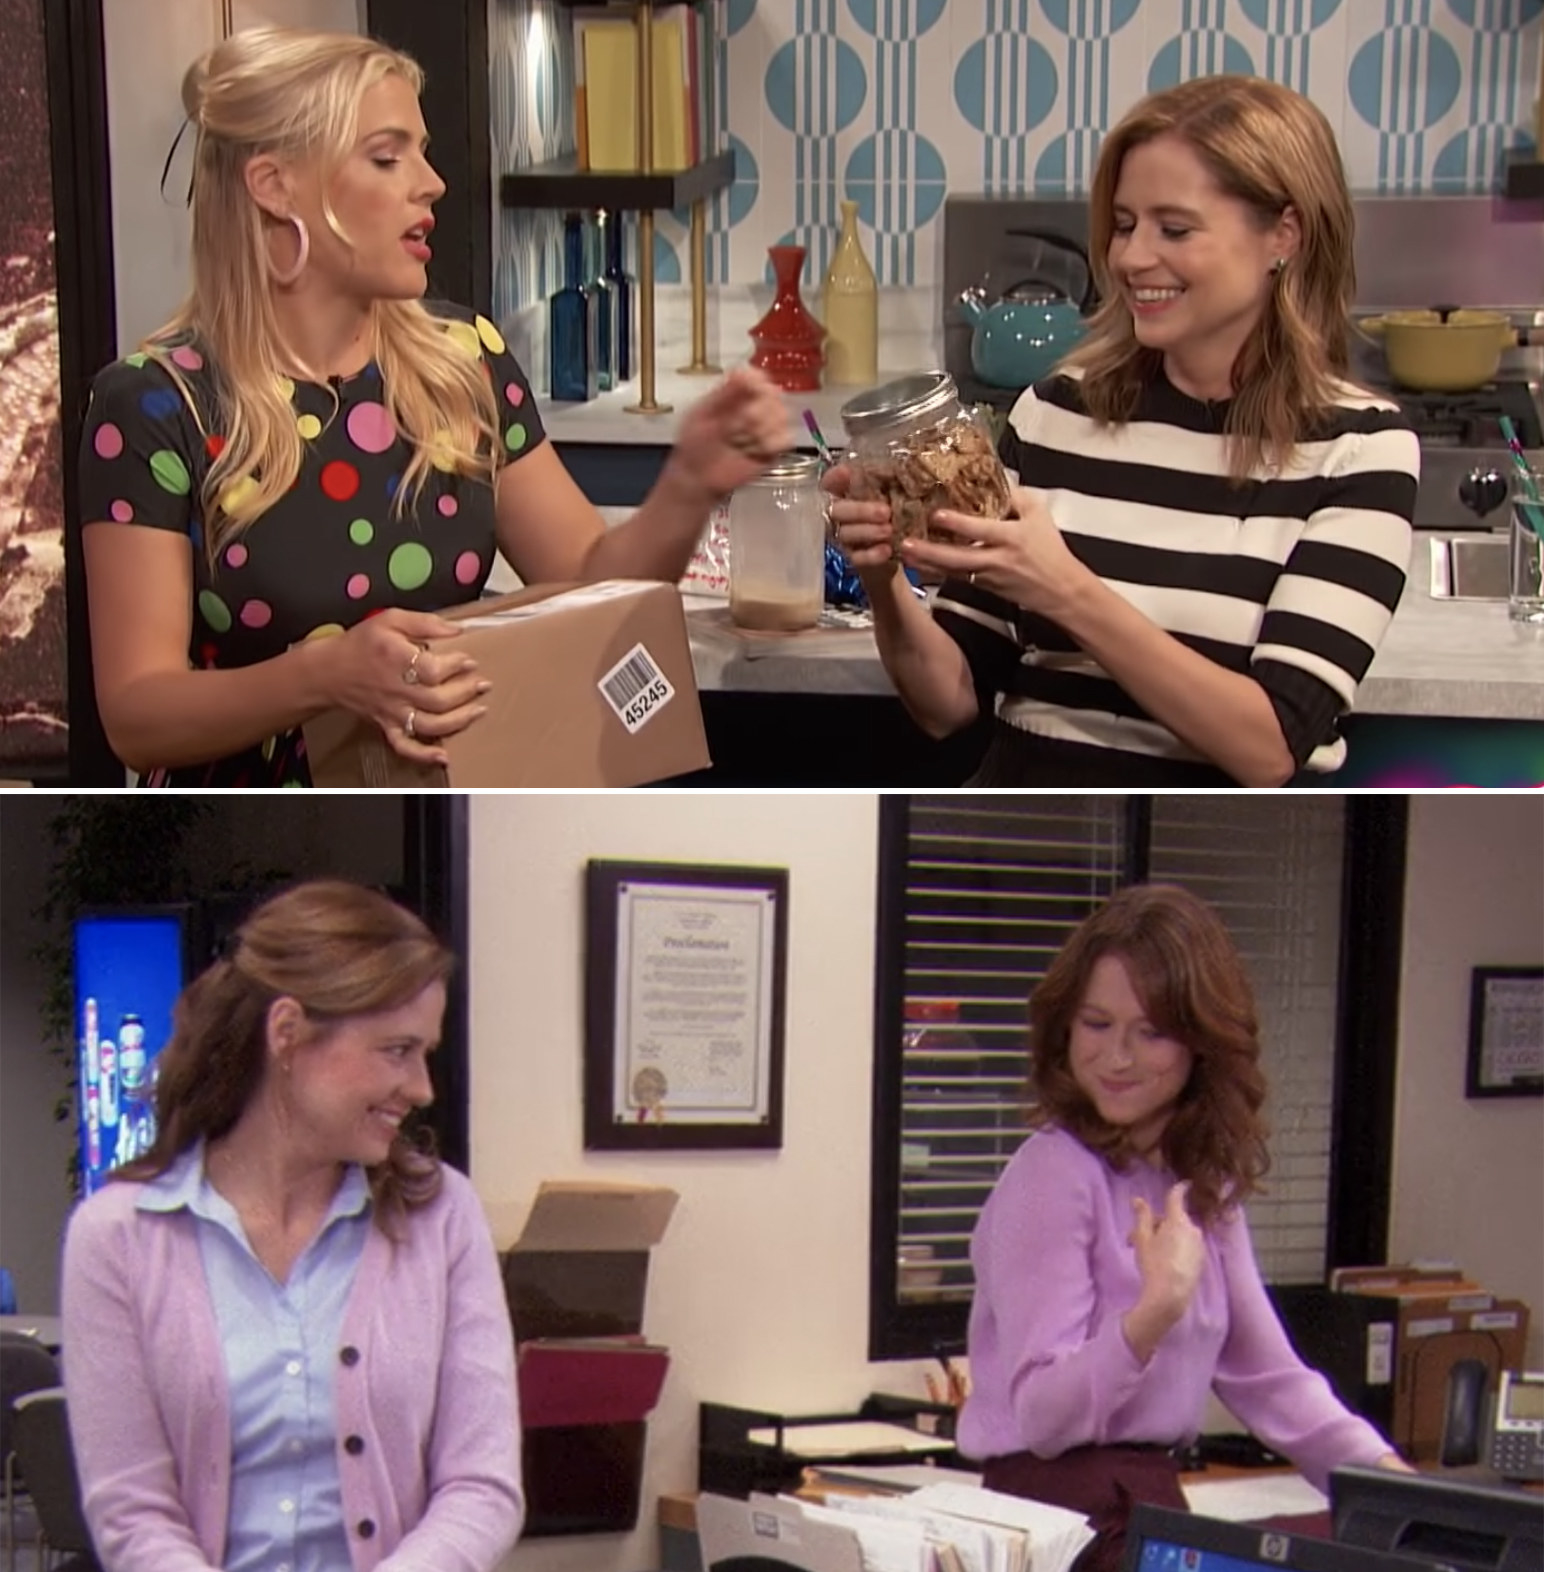 First, Jenna opened a box of raisin crisps from Ellie Kemper and said that she and Ellie ate several boxes while filming an episode of  The Office  once.